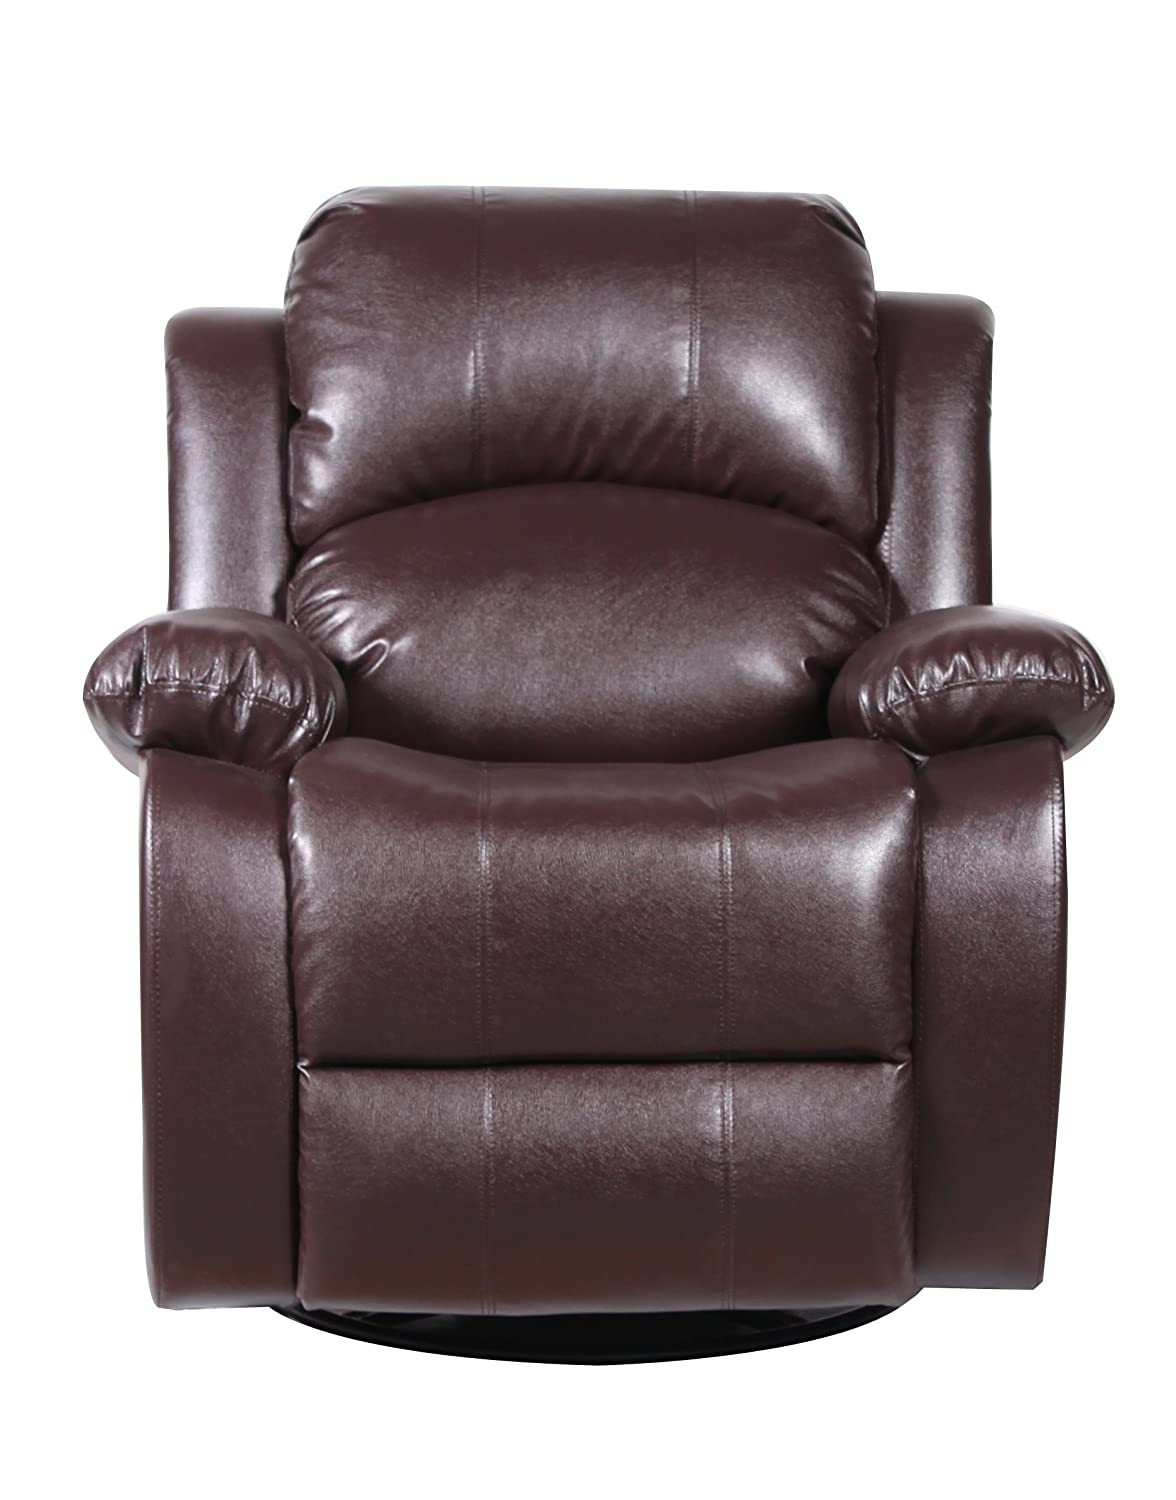 Amazon.com: Bonded Leather Rocker And Swivel Recliner Living Room Chair  (Brown): Kitchen U0026 Dining